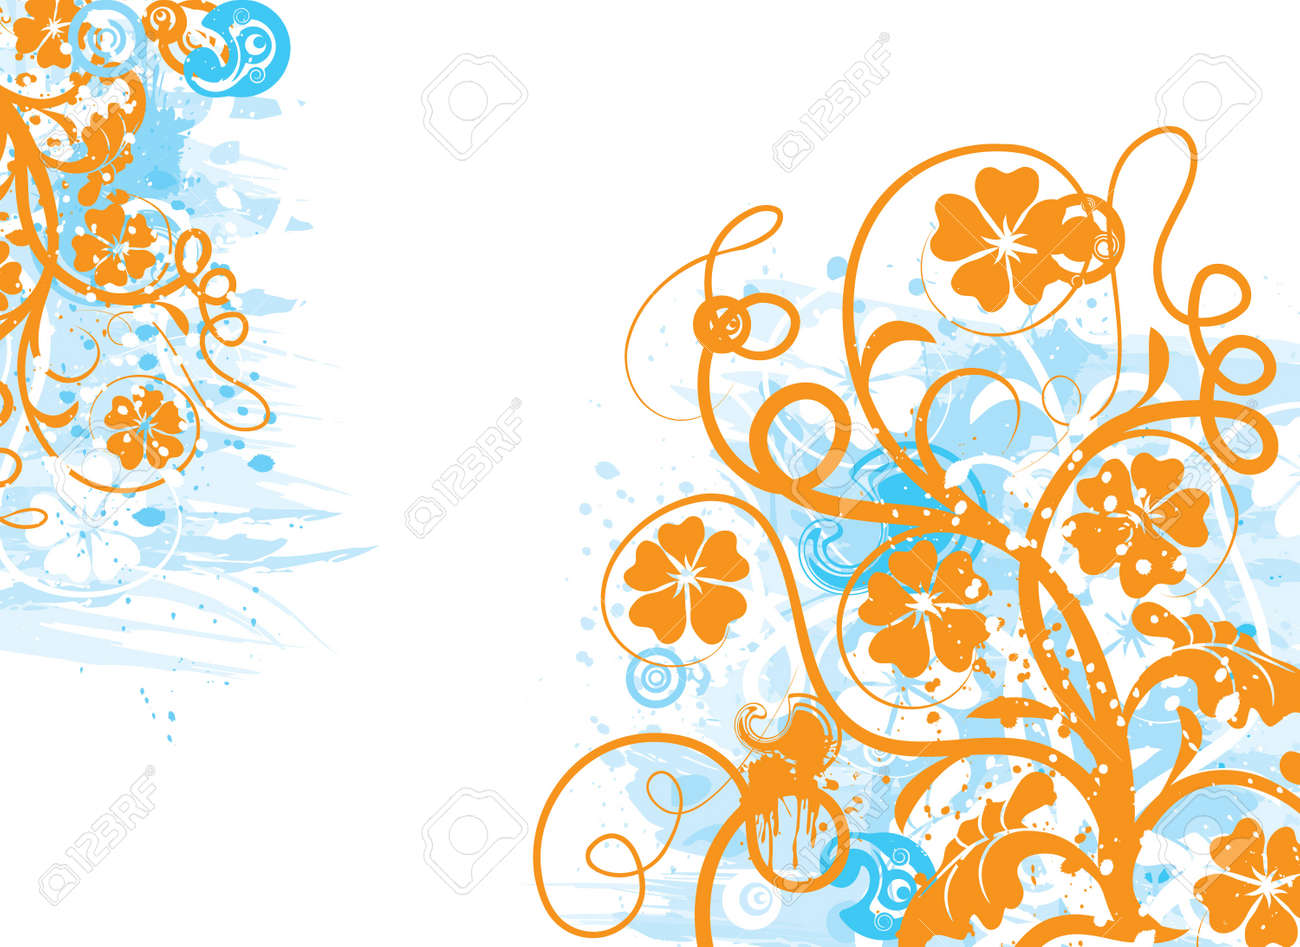 Grunge floral background Stock Photo - 895412